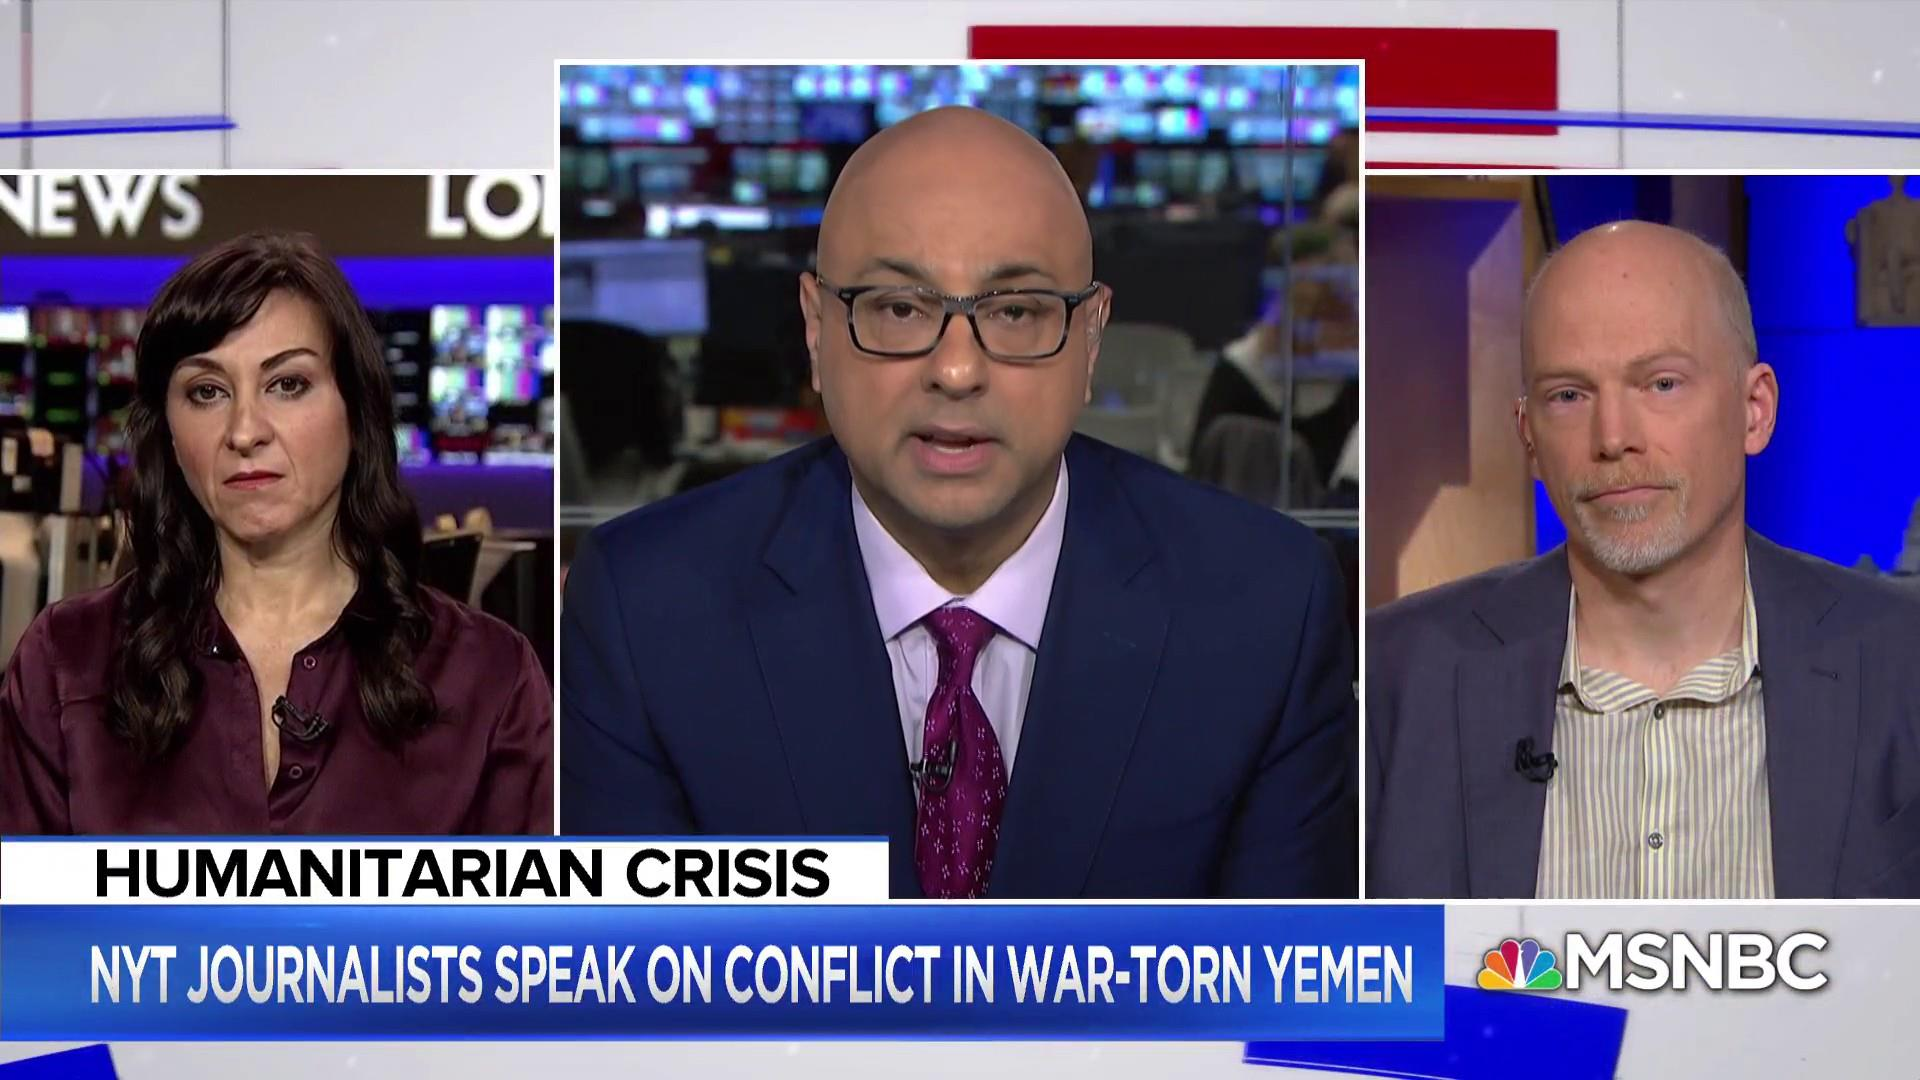 The conflict in Yemen: 'Our goal is to show what's happening there'